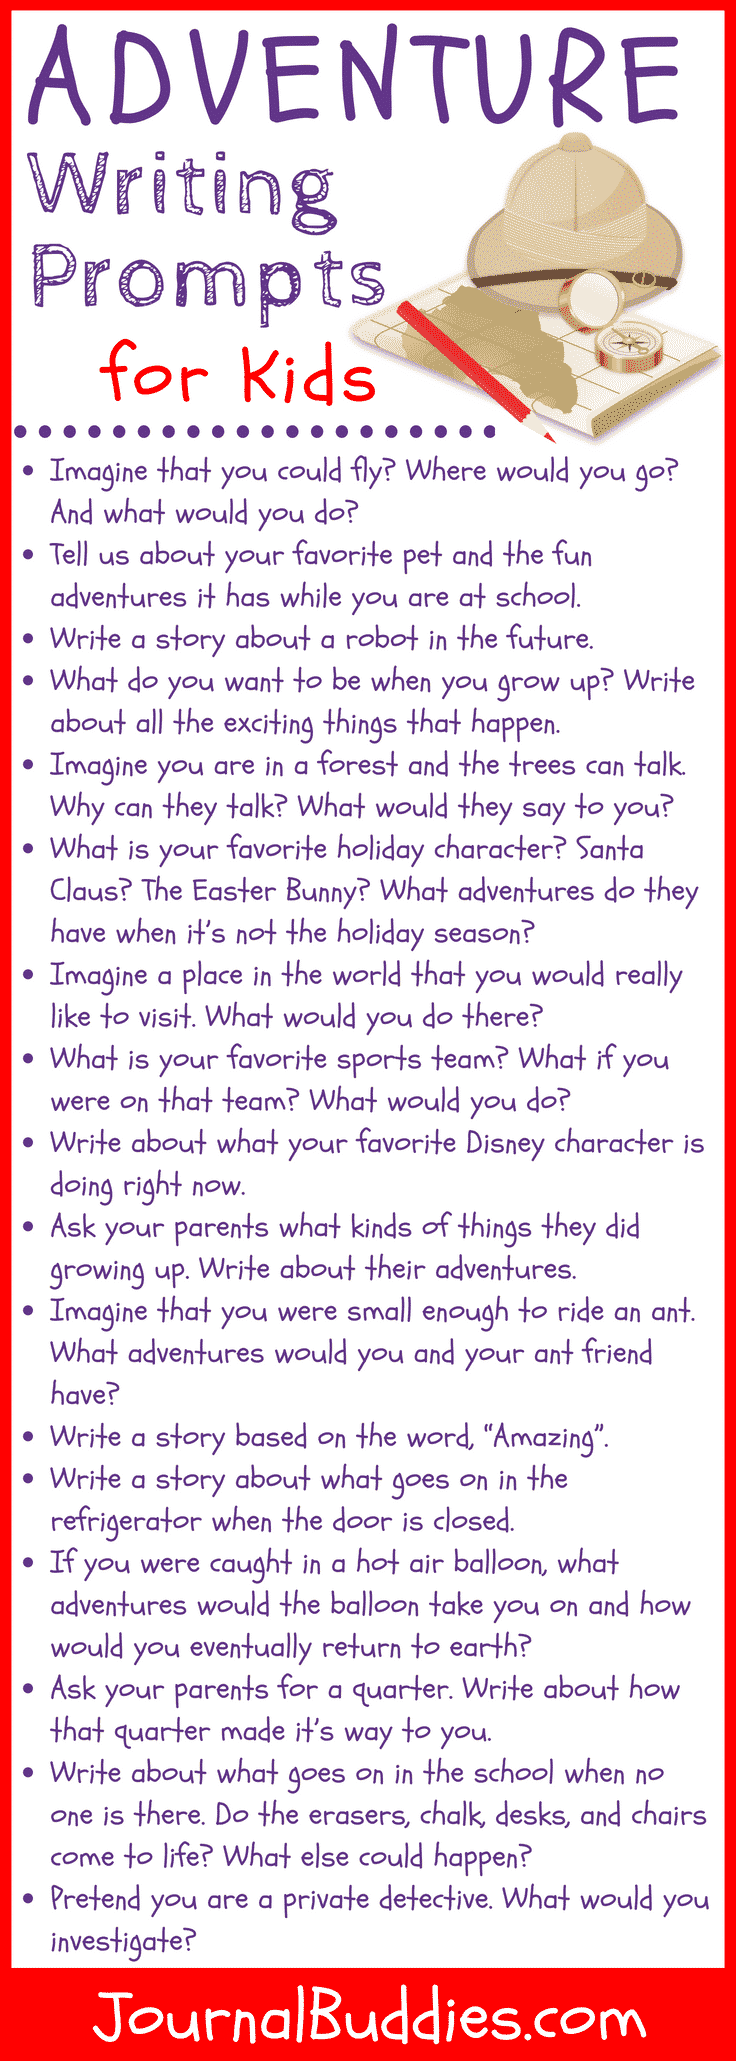 Adventure Story Ideas 17 adventure writing prompts for kids • journalbuddies